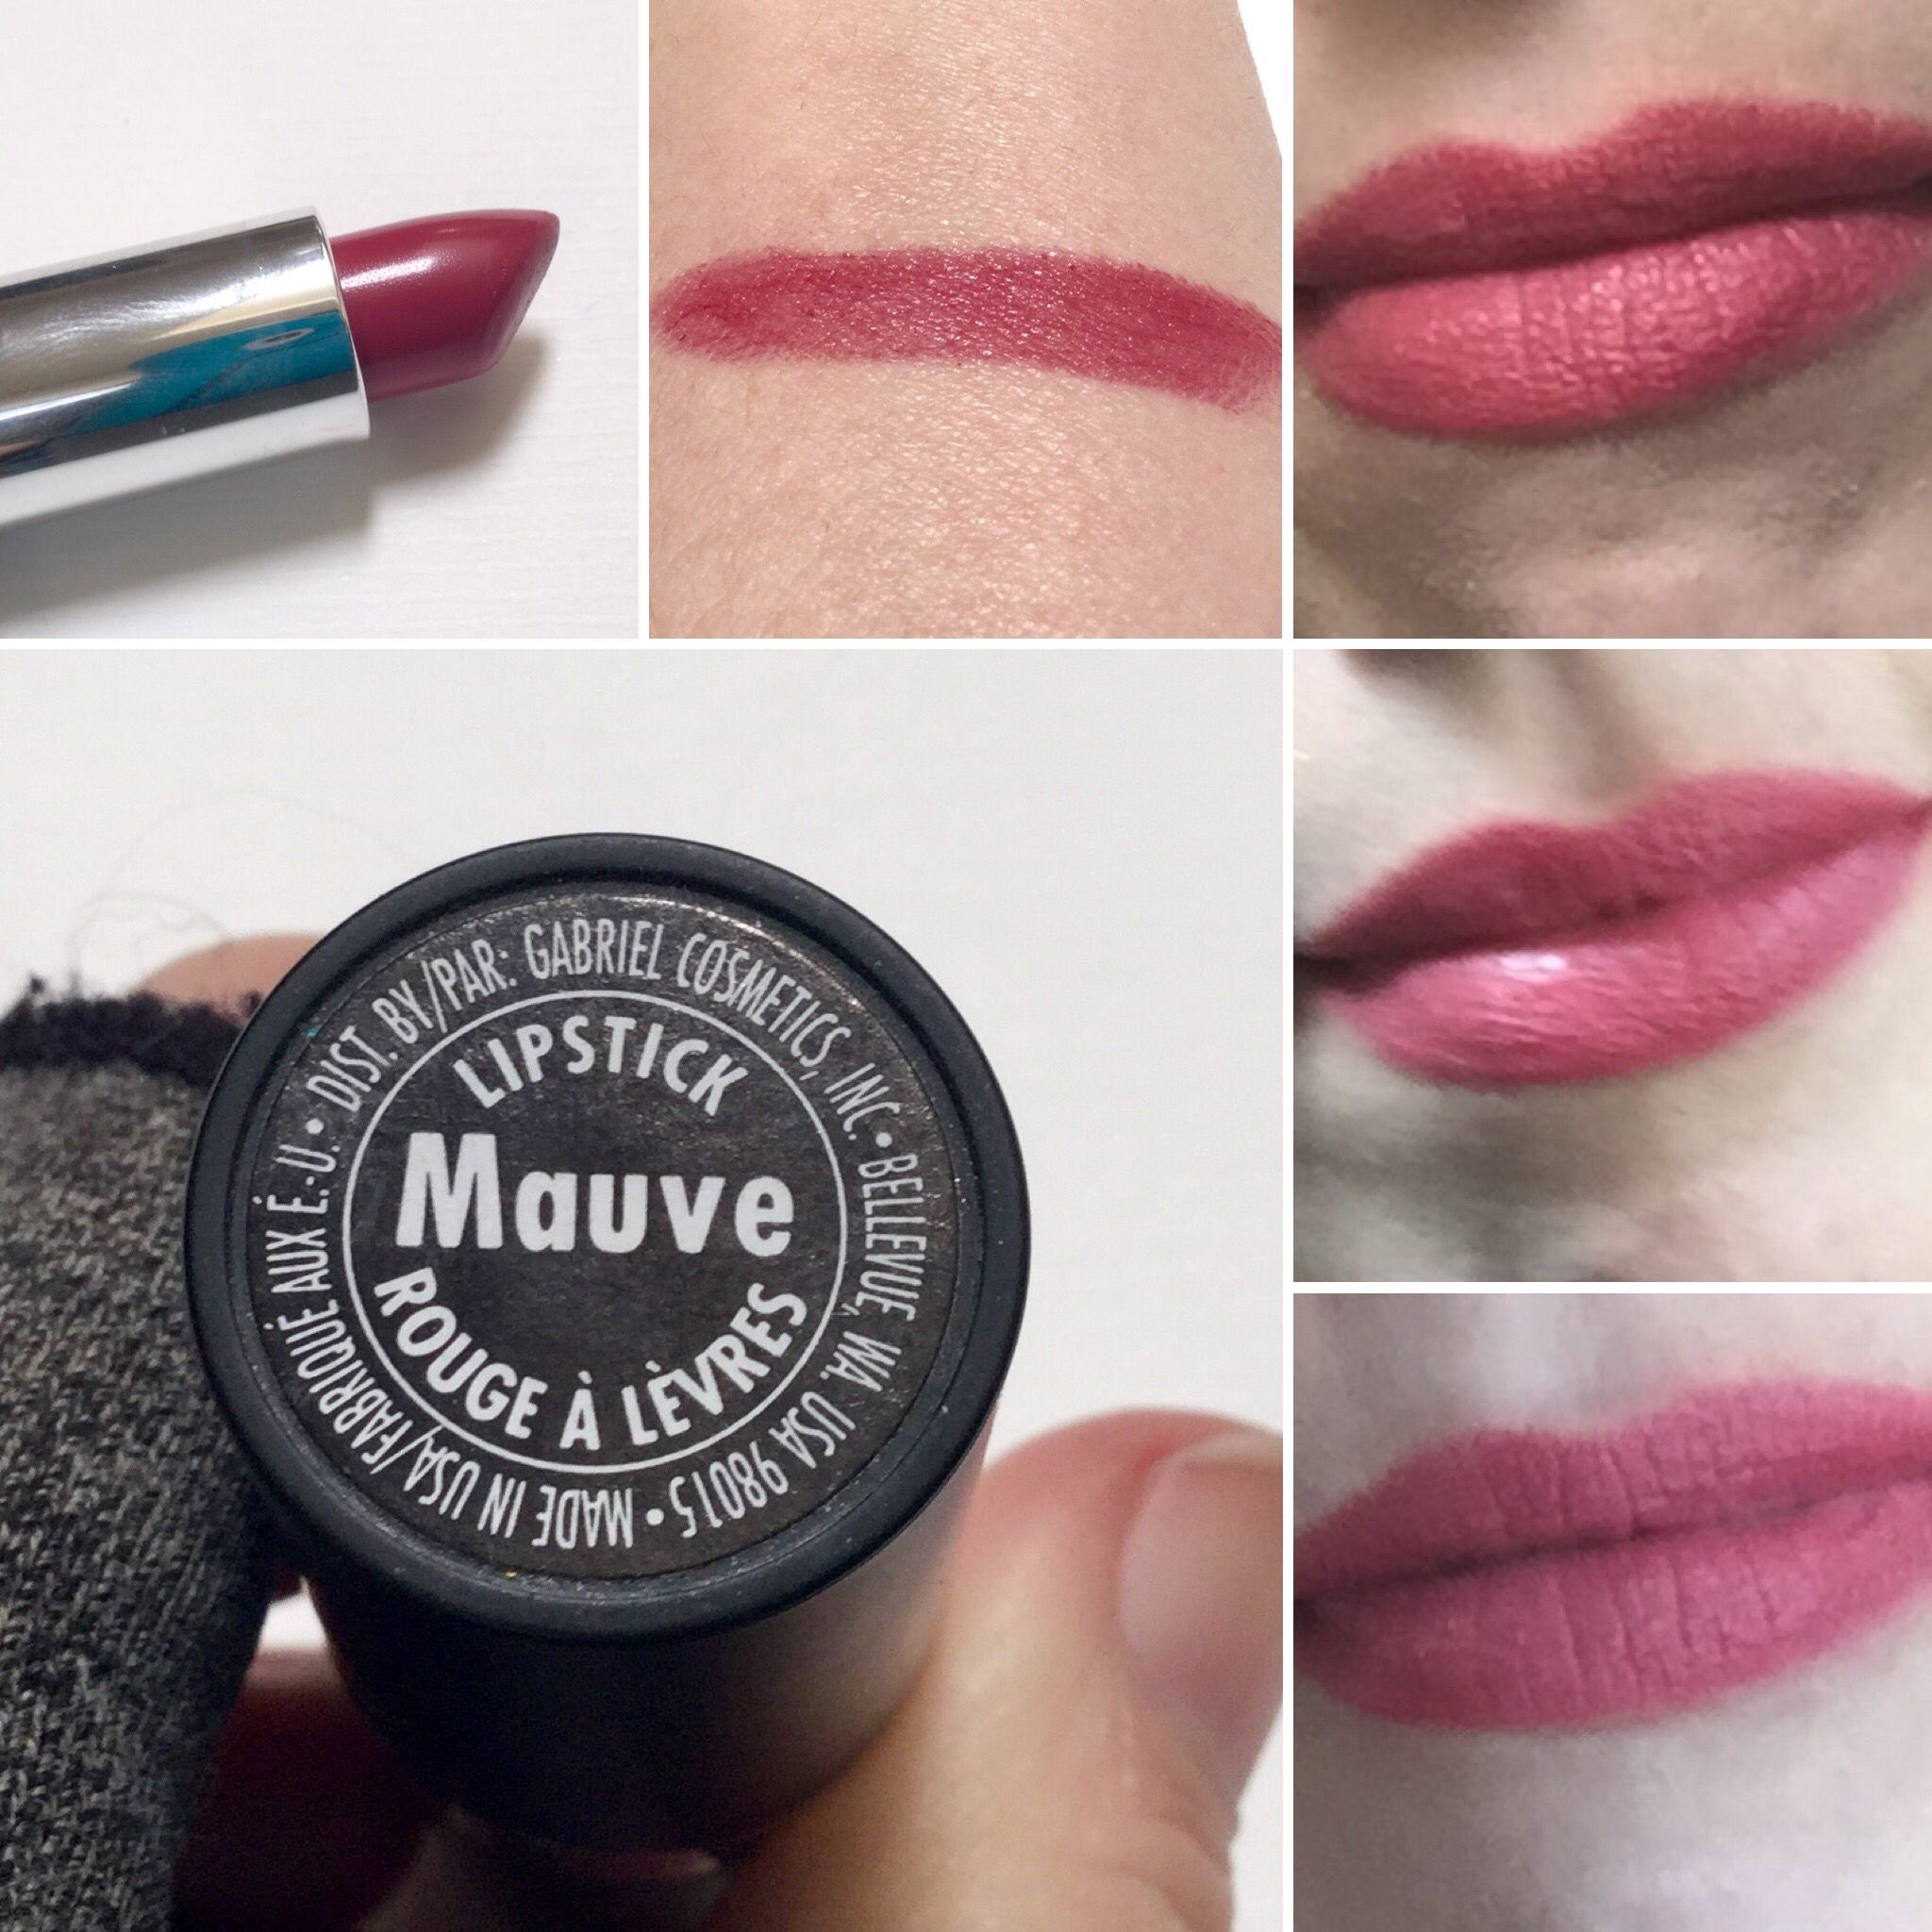 Mauve Lipstick By Gabriel Cosmetics Really More Like Bubblegum